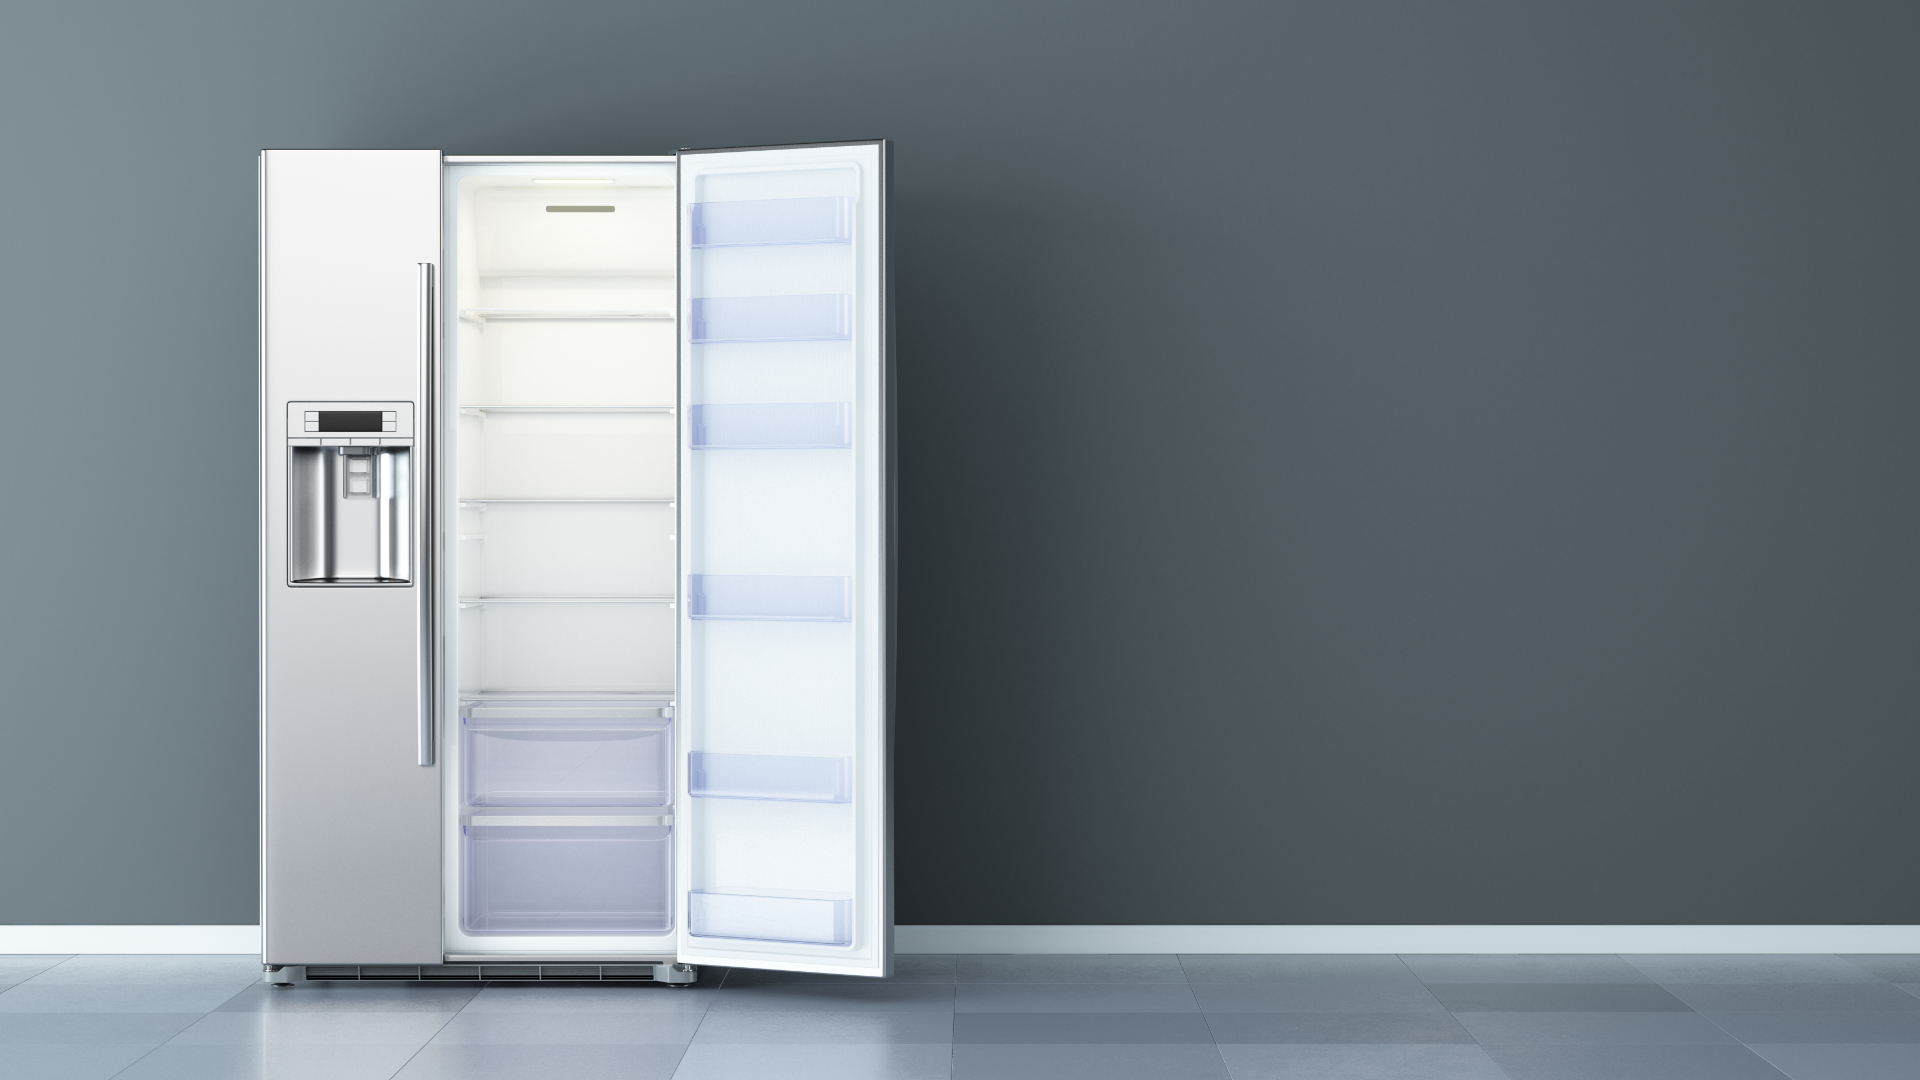 """Featured image for """"LG Refrigerator Not Cooling? Here's What to Do"""""""